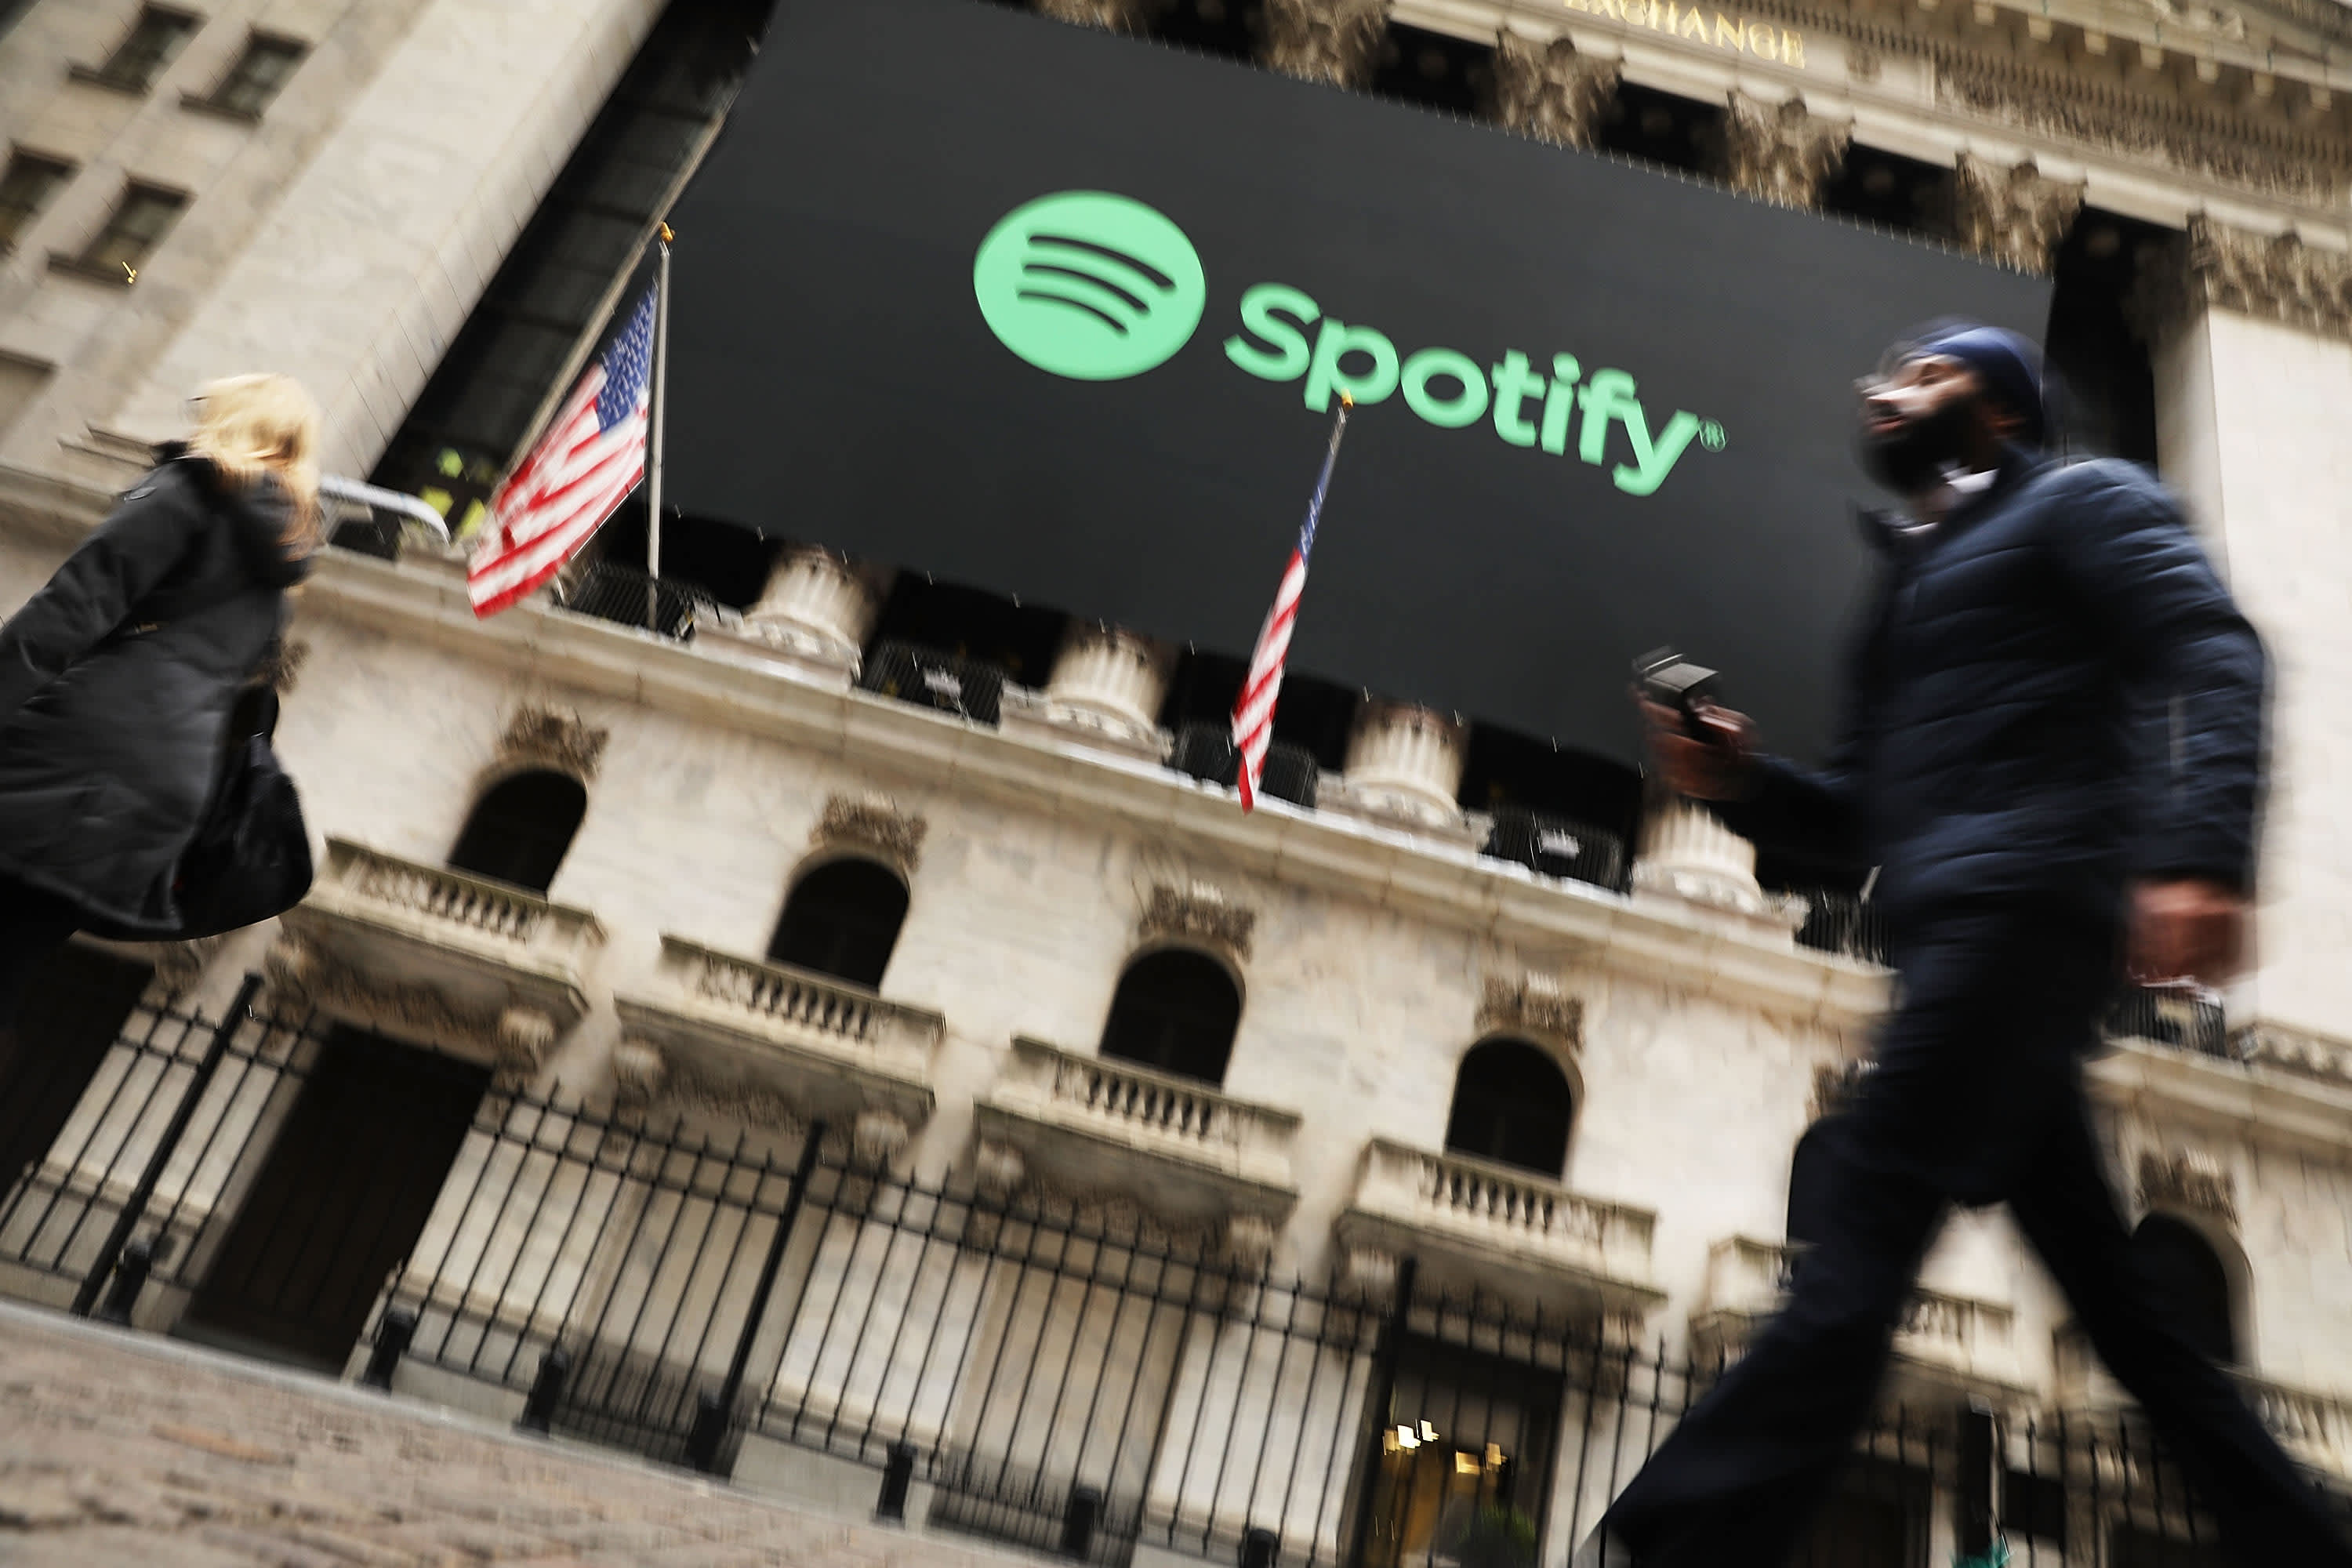 Stocks making the biggest moves midday: Shopify, Spotify, Enphase Energy and more